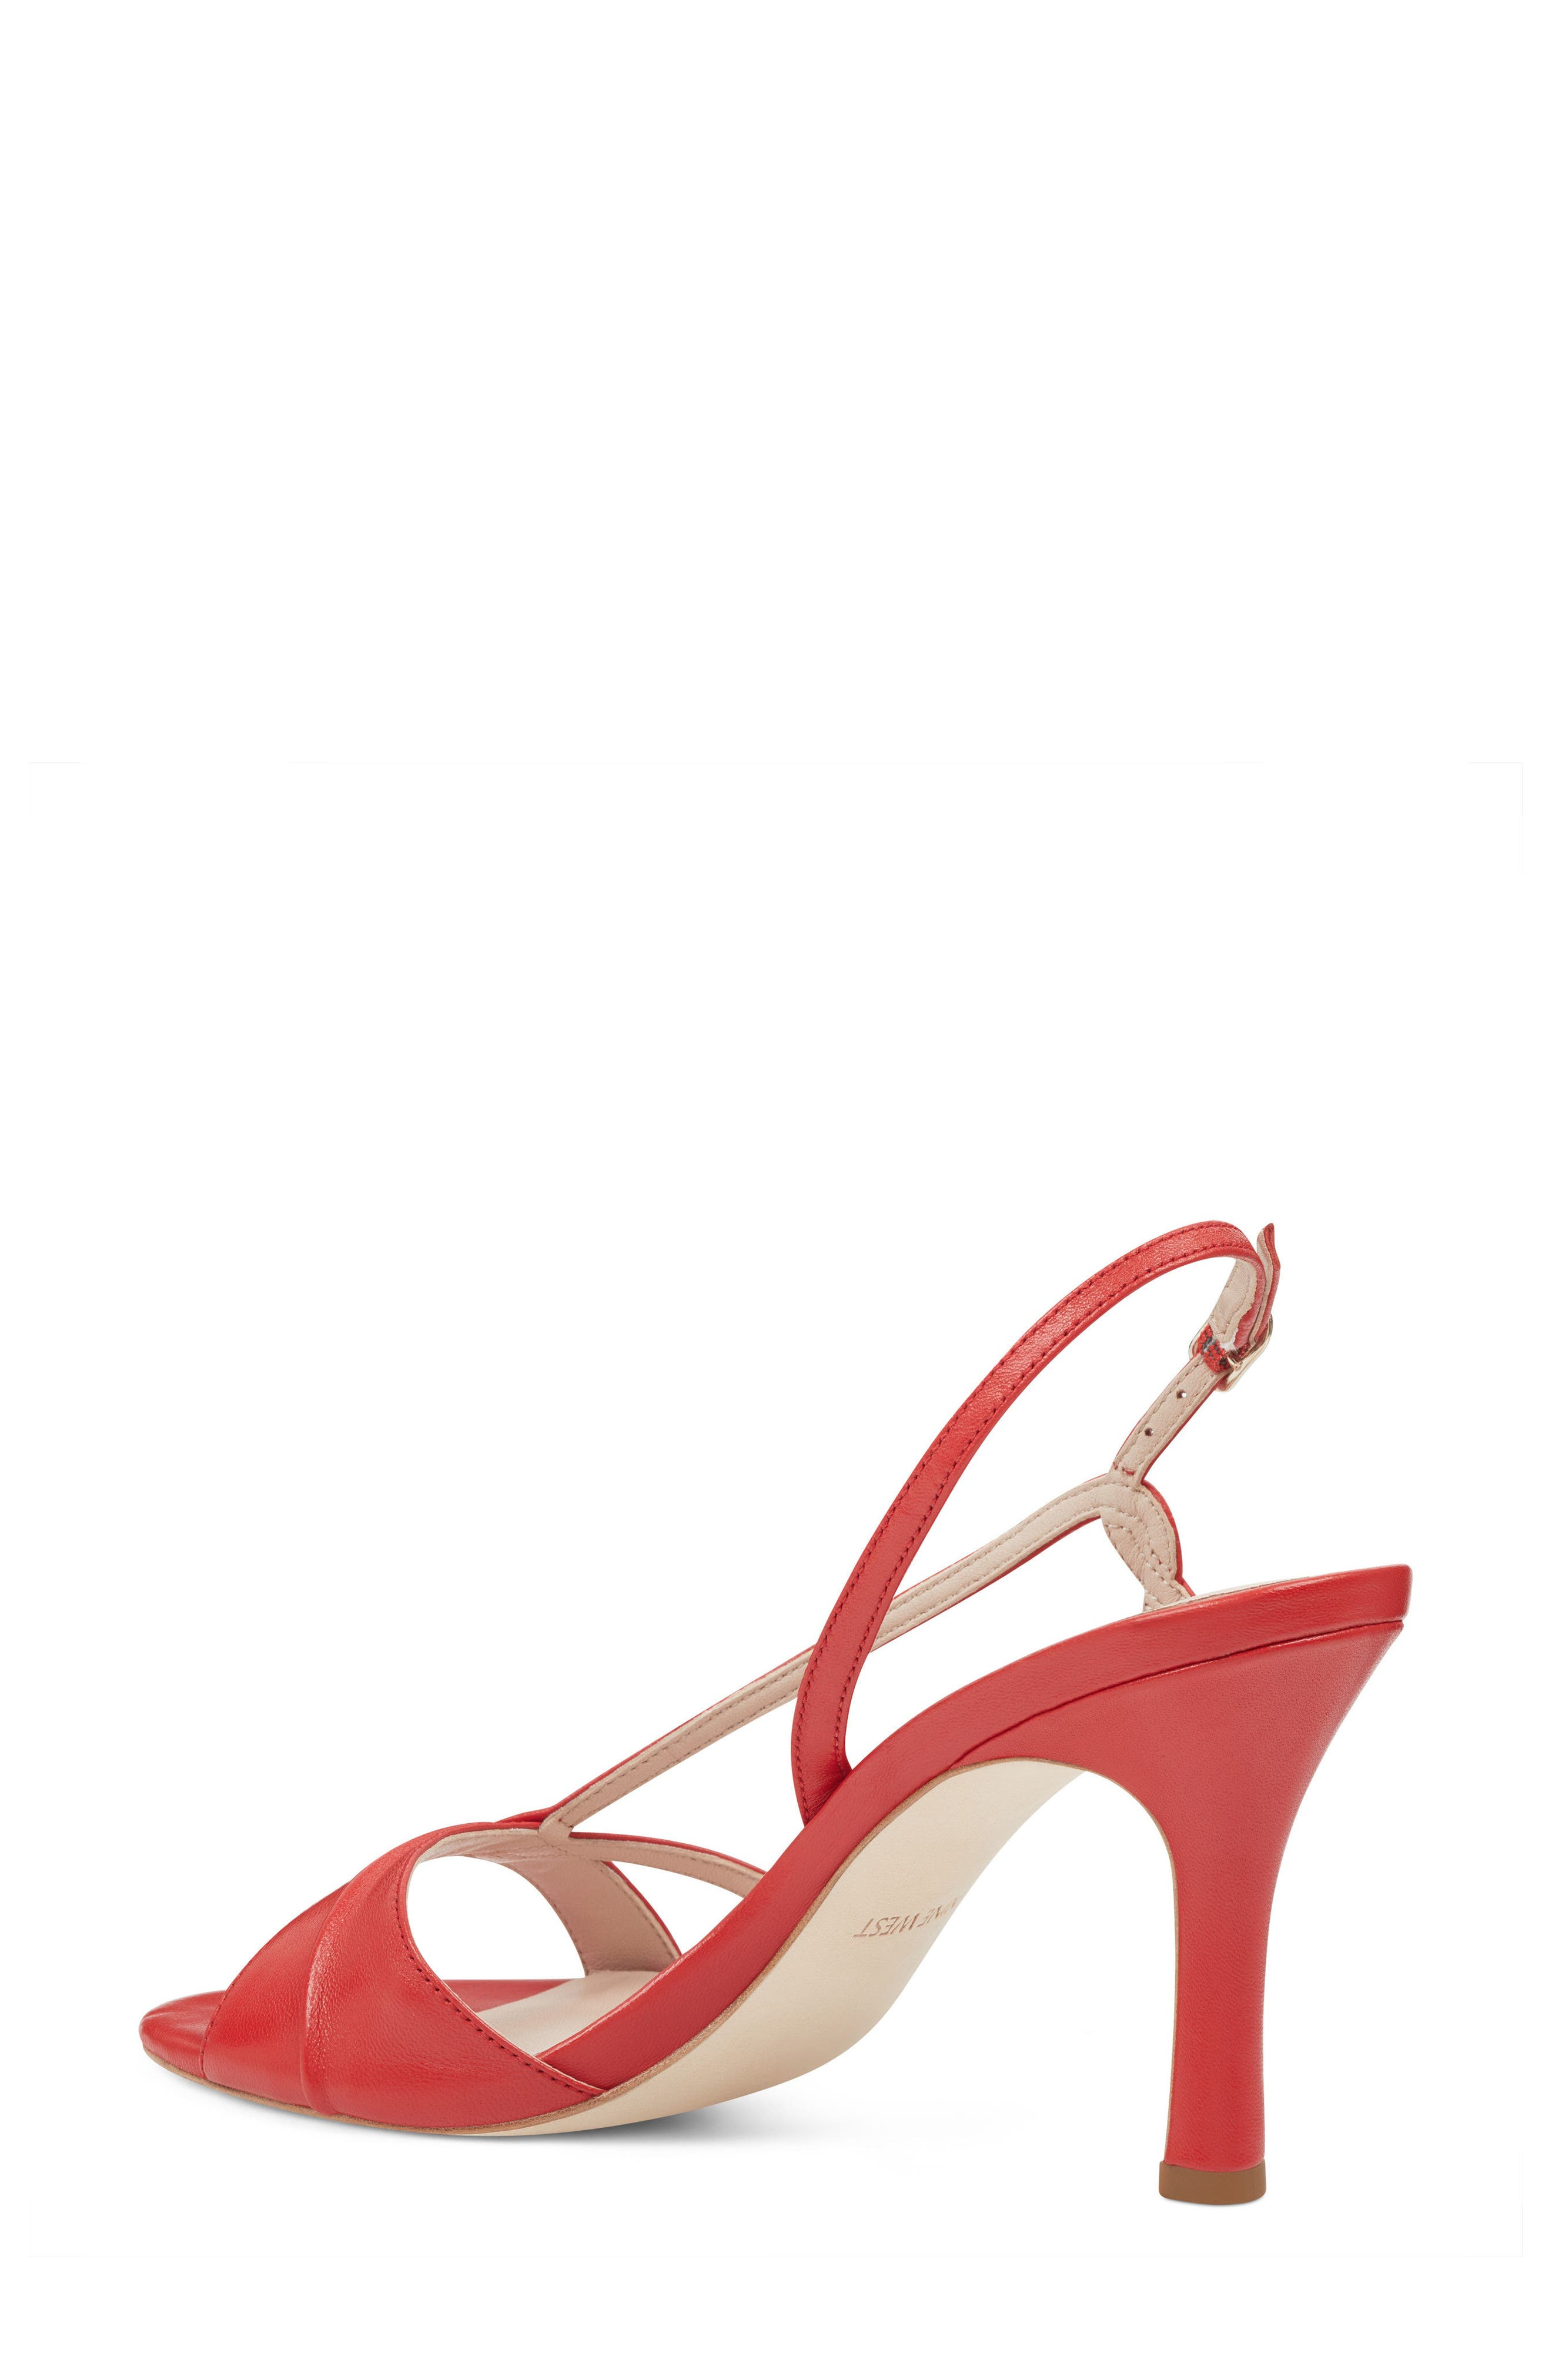 Accolia - 40th Anniversary Capsule Collection Sandal,                             Alternate thumbnail 2, color,                             Red Leather